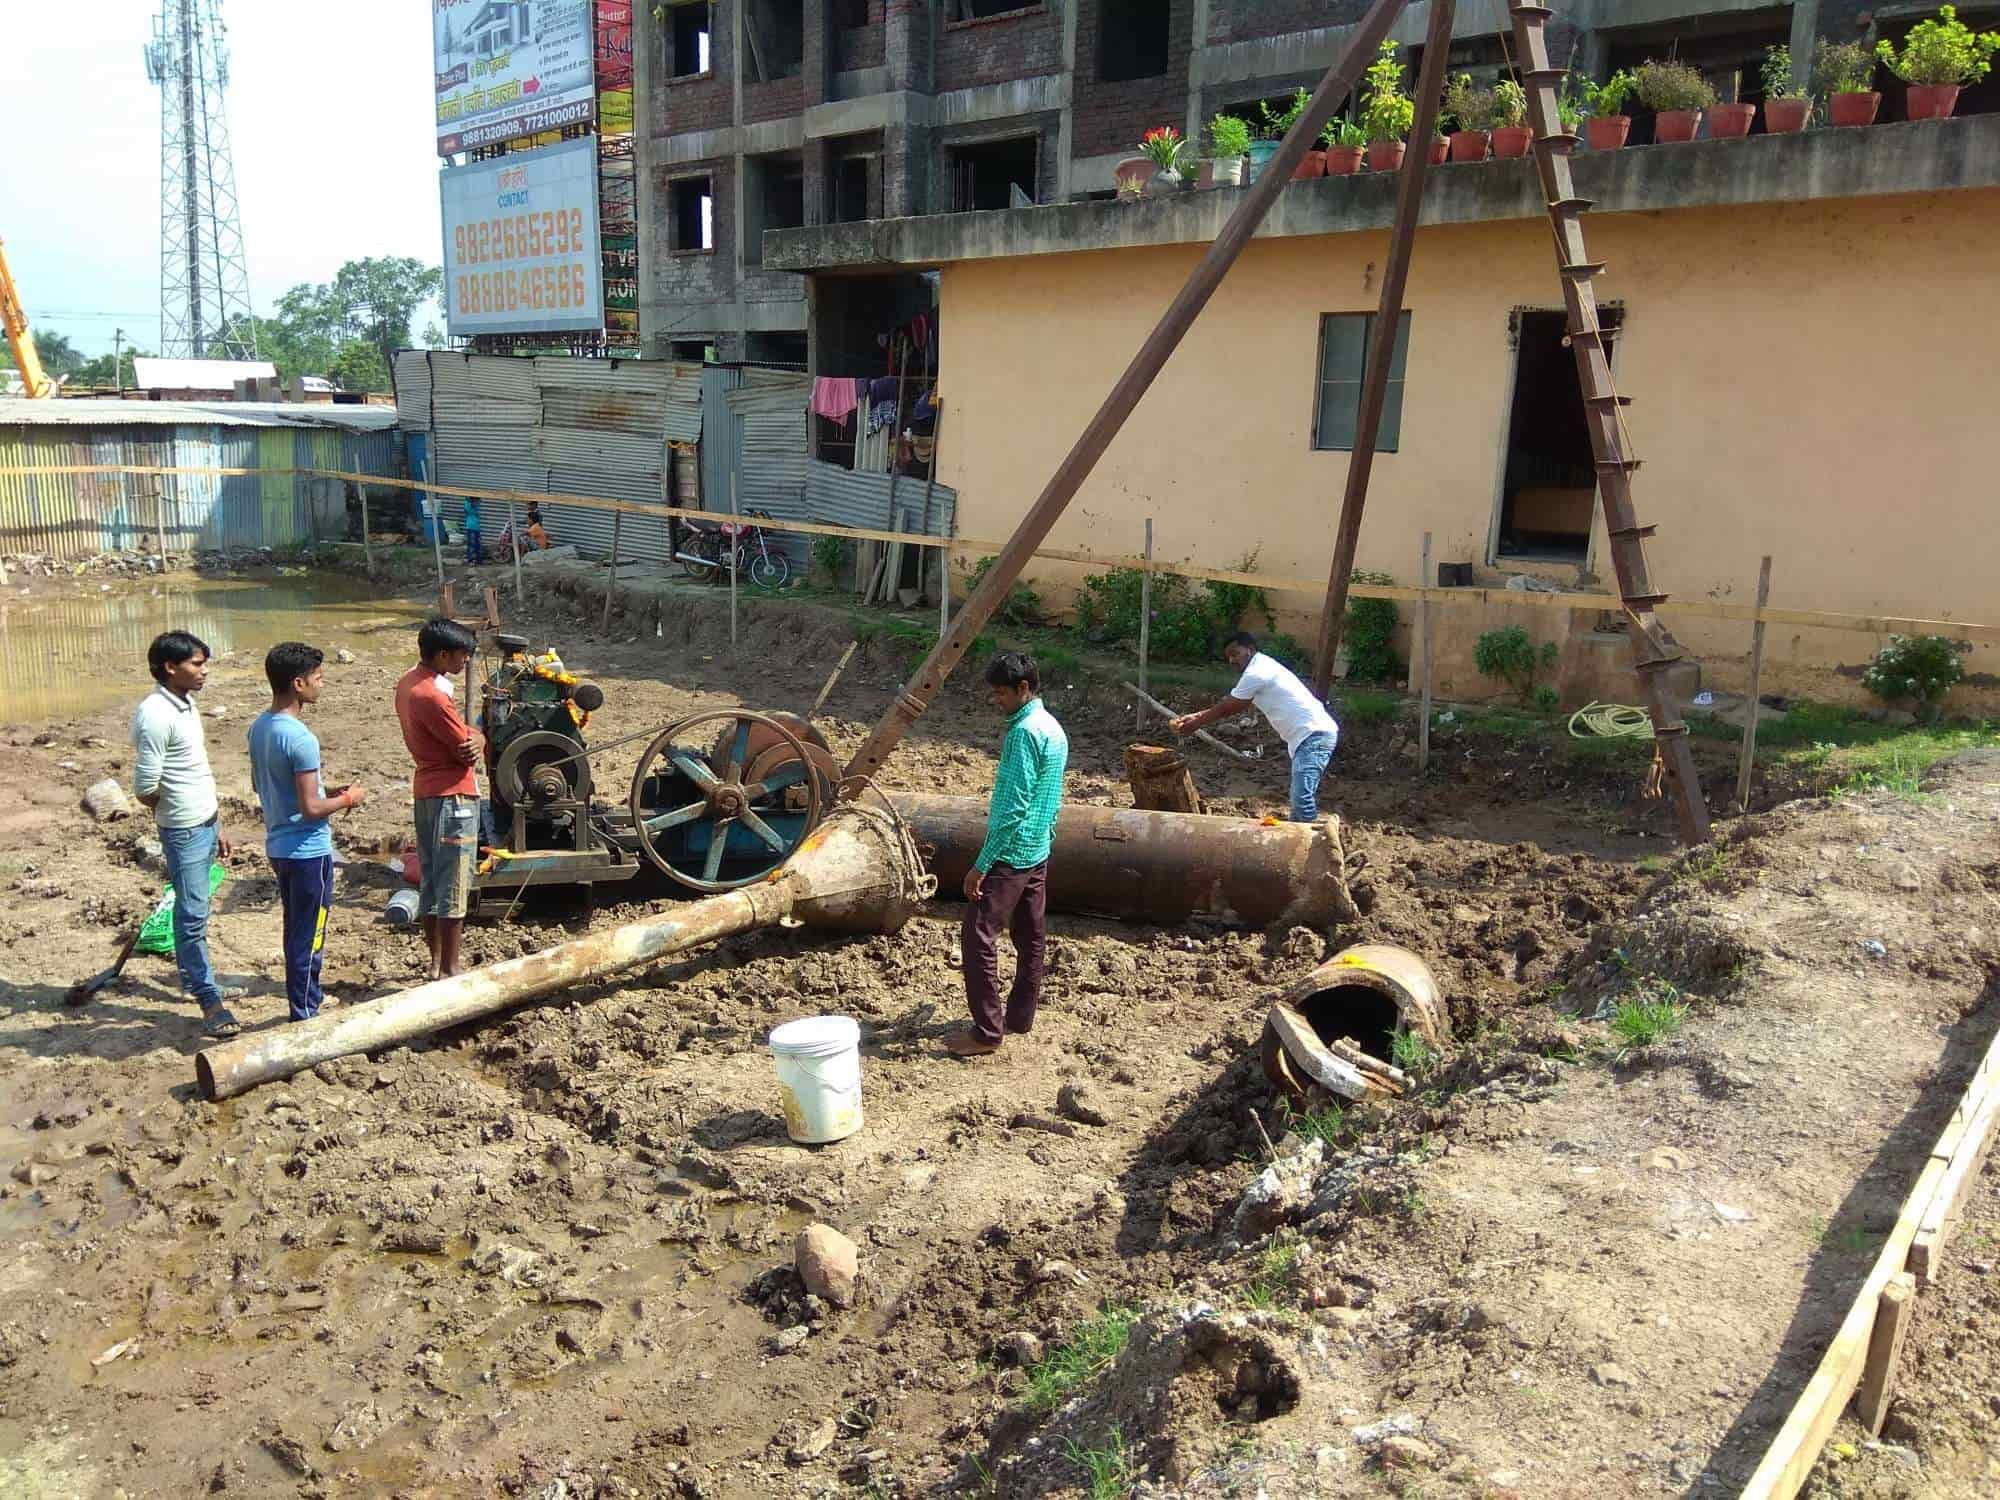 Sandeep pile foundation warje sandip pile foundation piling sandeep pile foundation warje sandip pile foundation piling contractors in pune justdial solutioingenieria Image collections